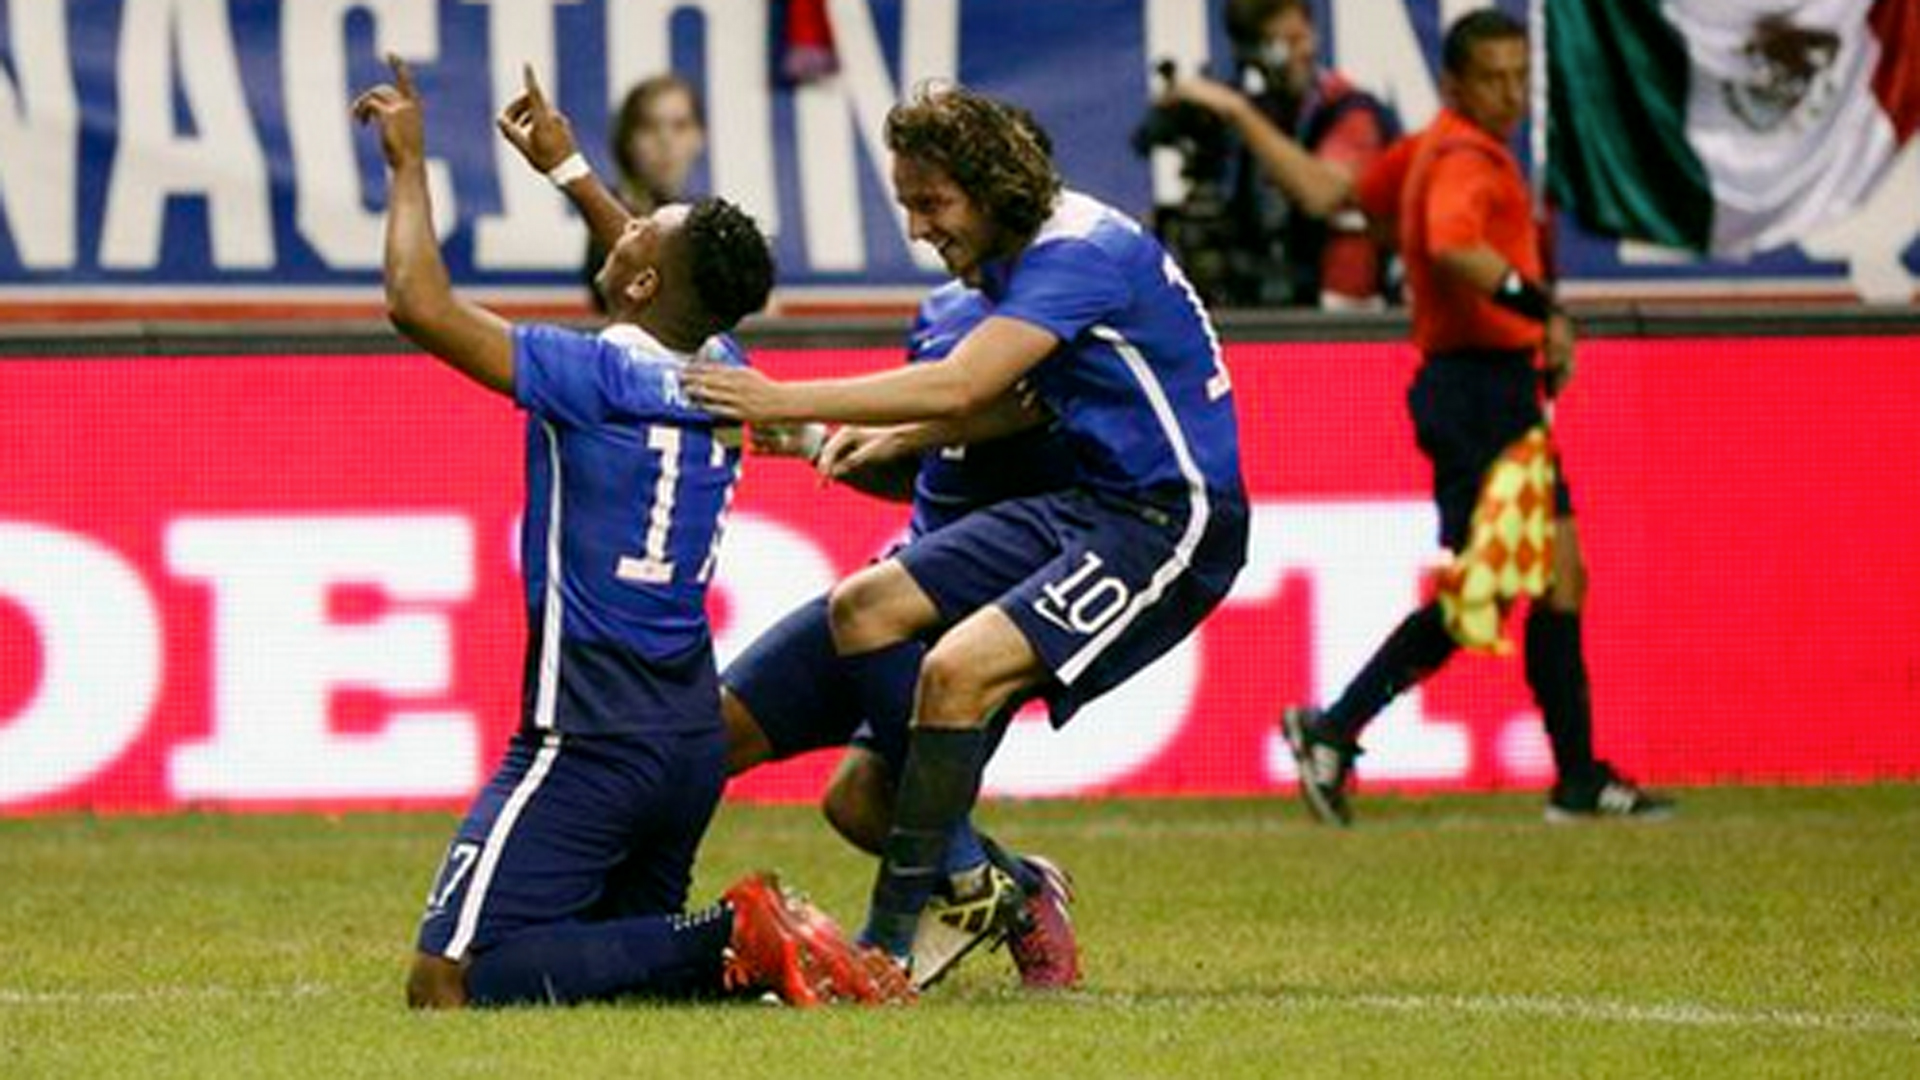 'Dos A Cero' lives on as USMNT beats Mexico in friendly